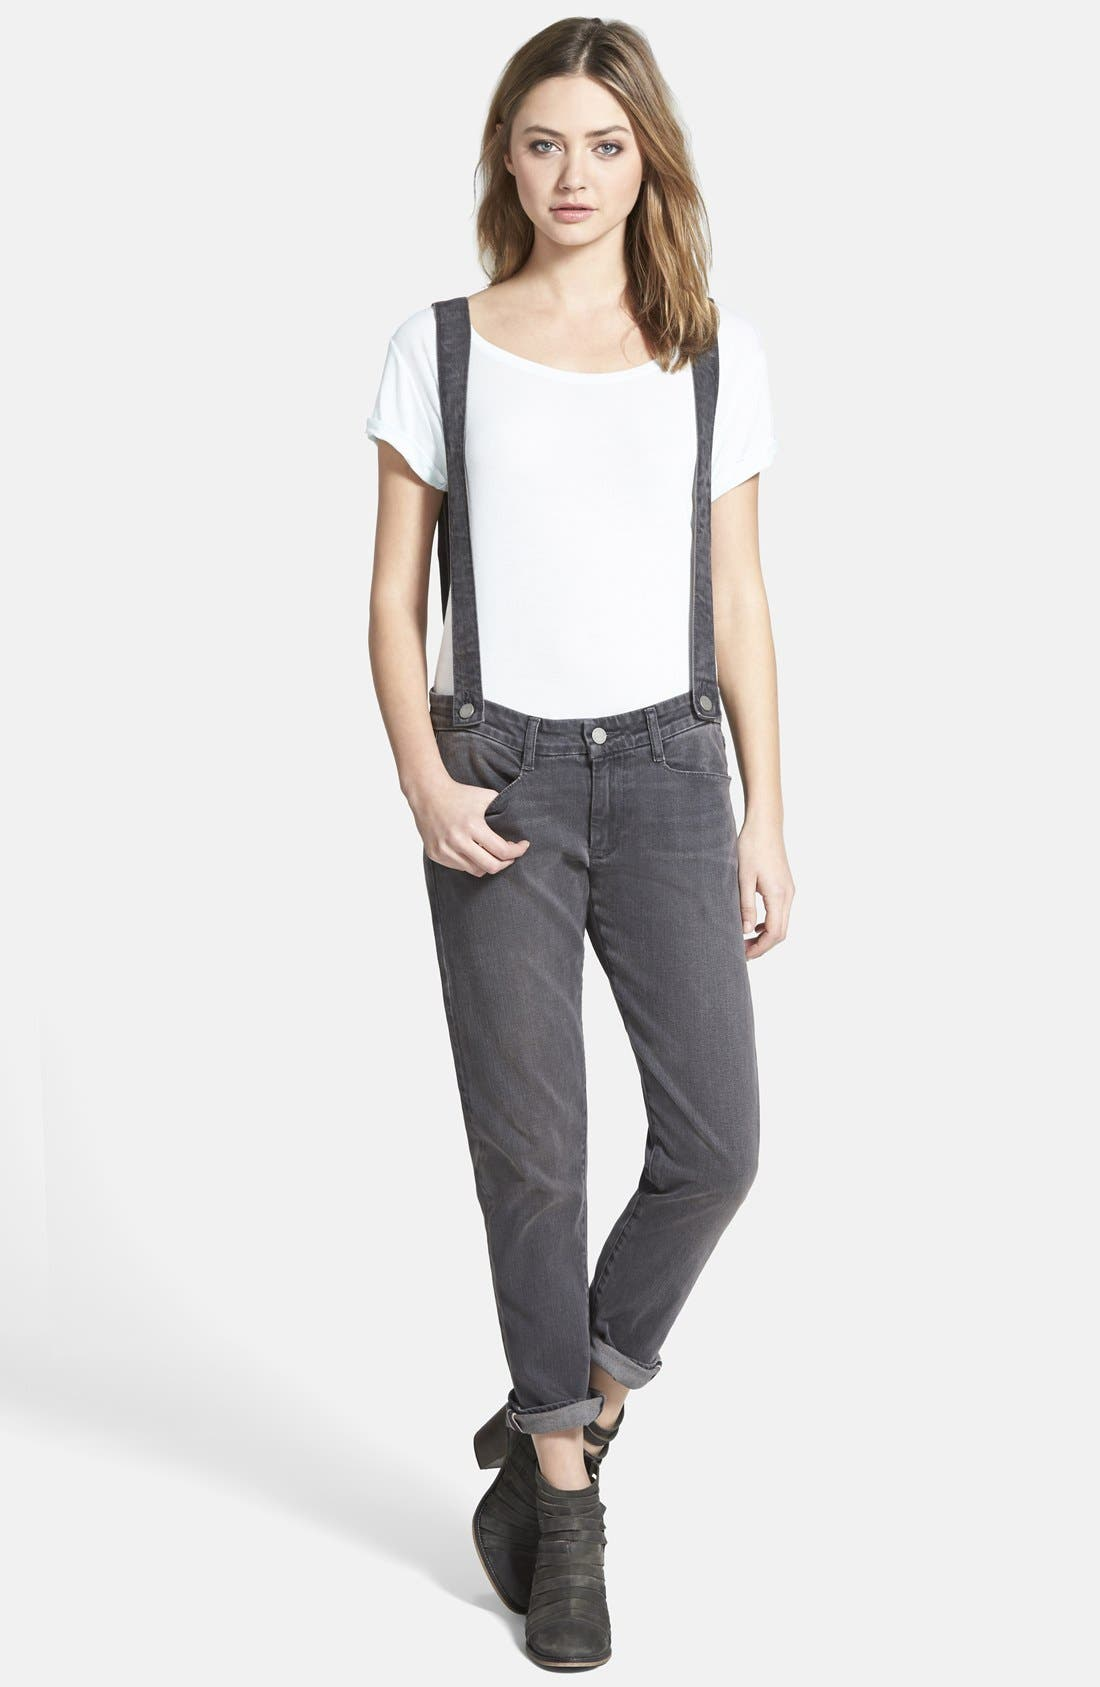 Main Image - Paige Denim 'Phillipa' Boyfriend Jeans with Suspenders (Rudy)